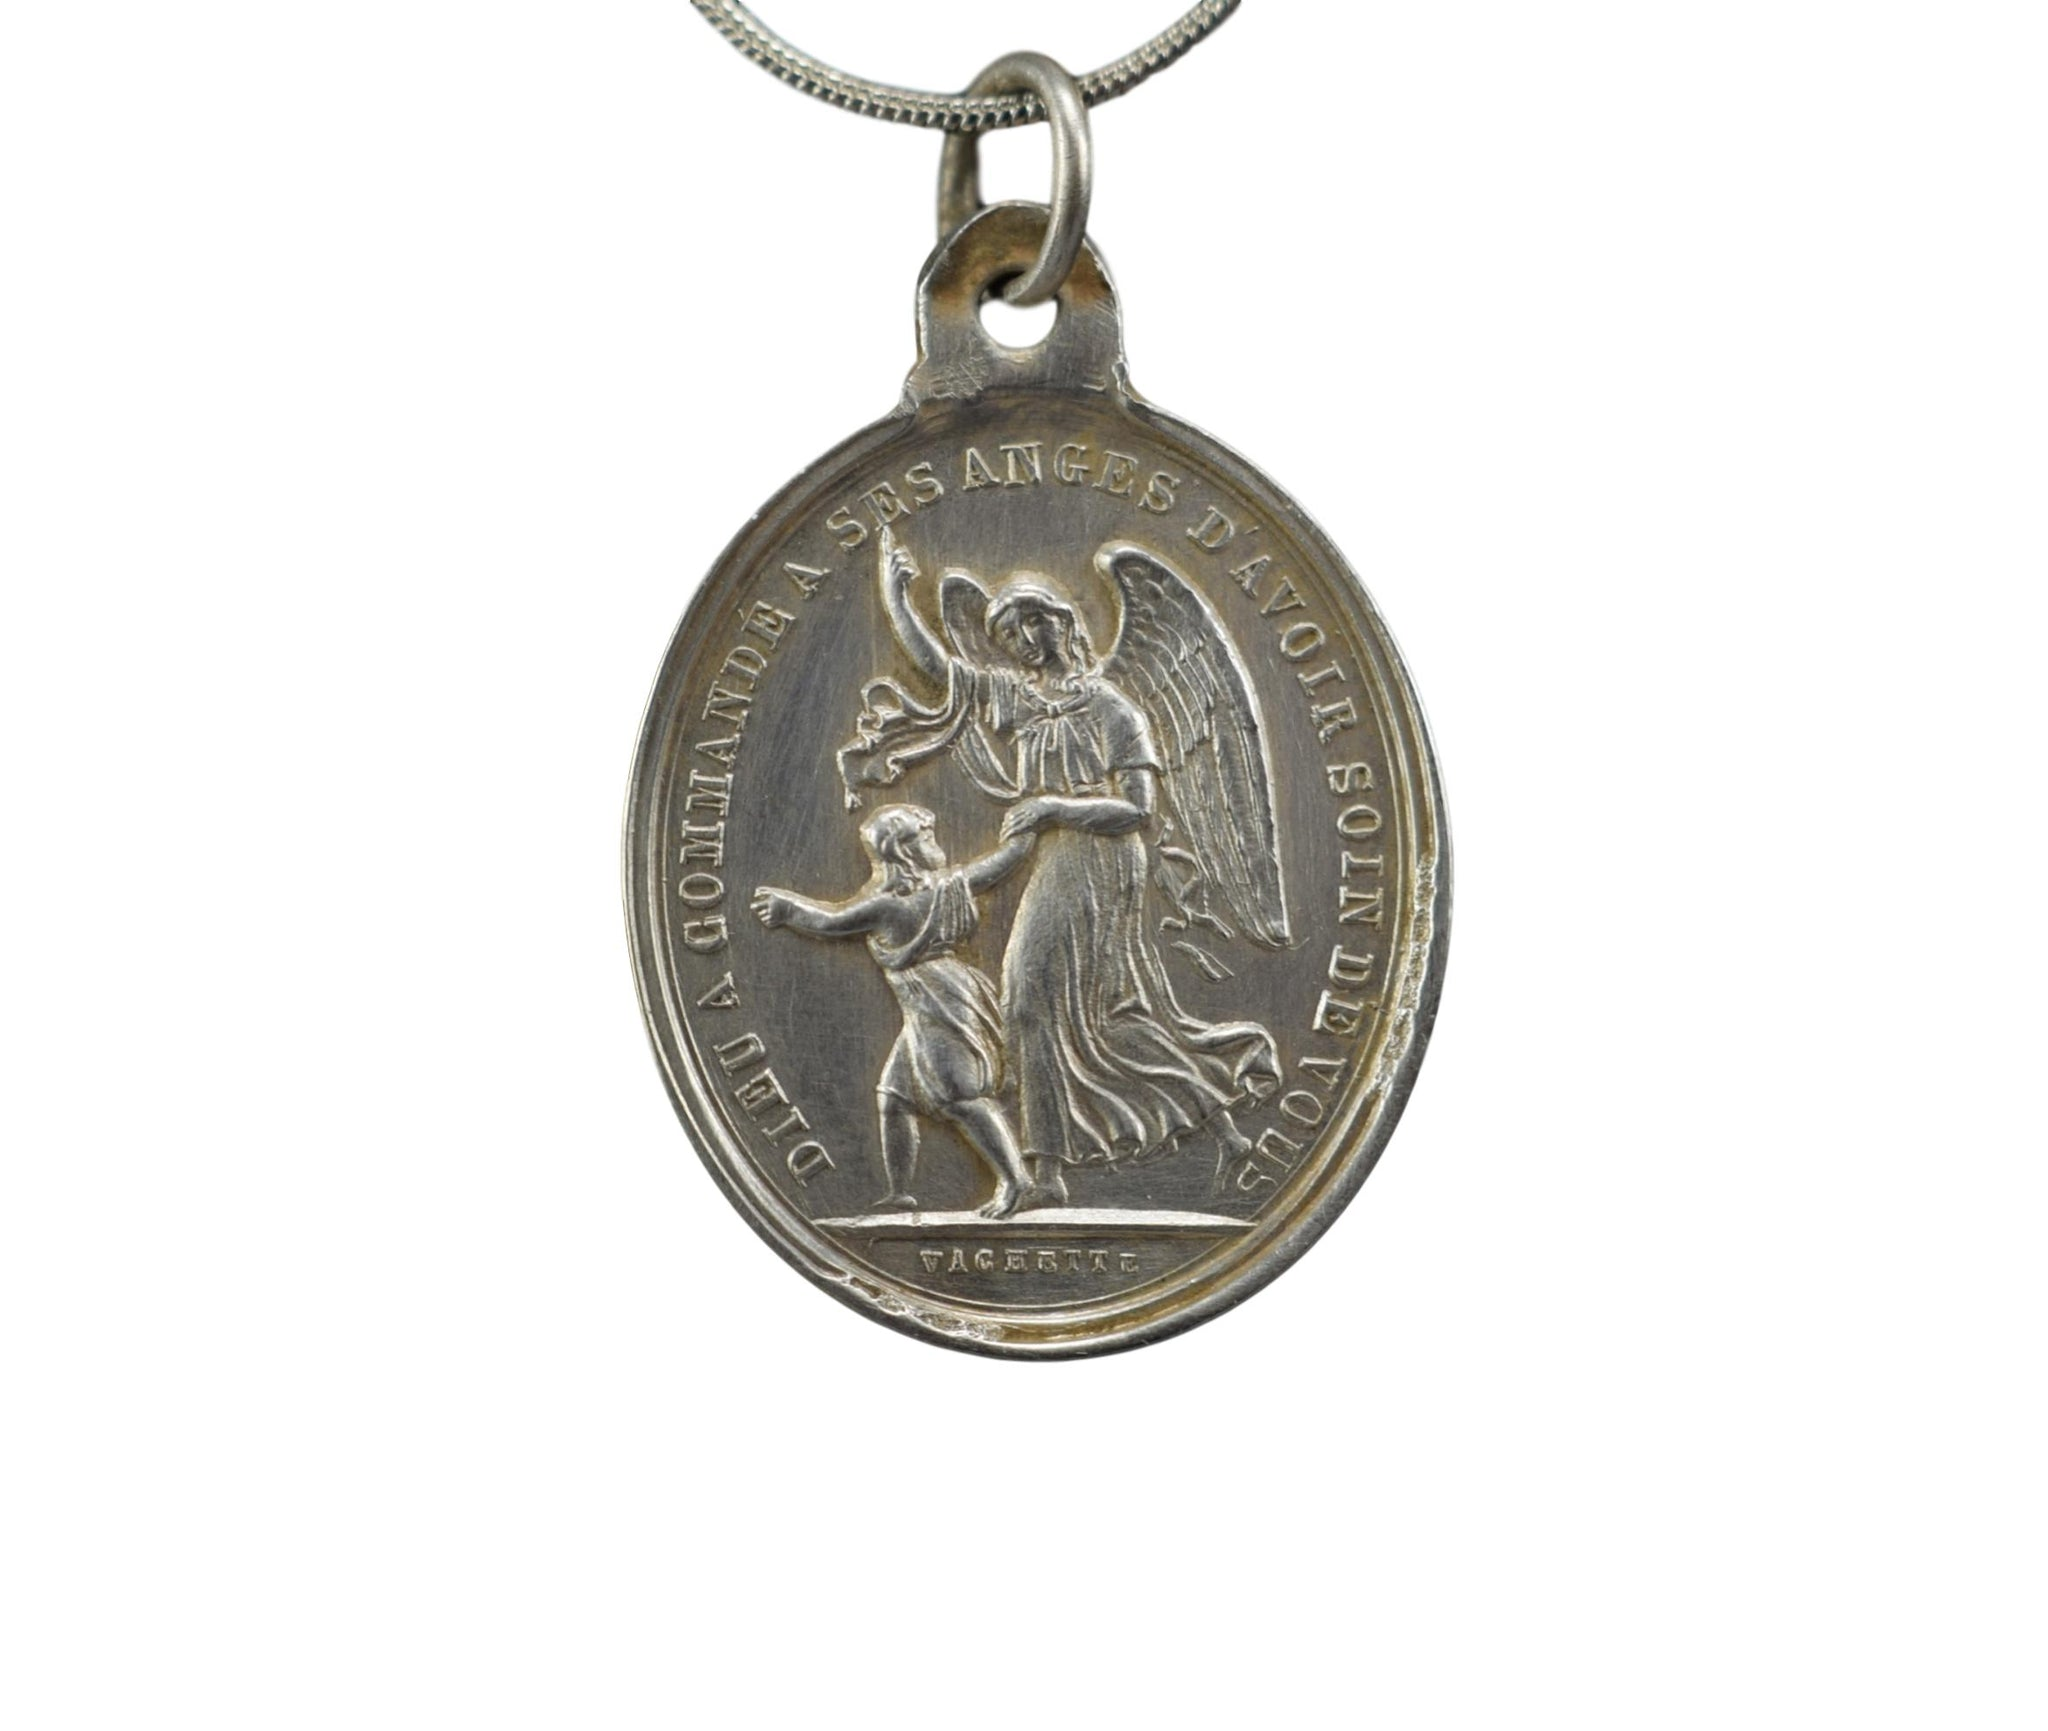 Vachette Large Sterling Silver Guardian Angel & Mary and Jesus Sacred Hearts Medal Pendant Necklace